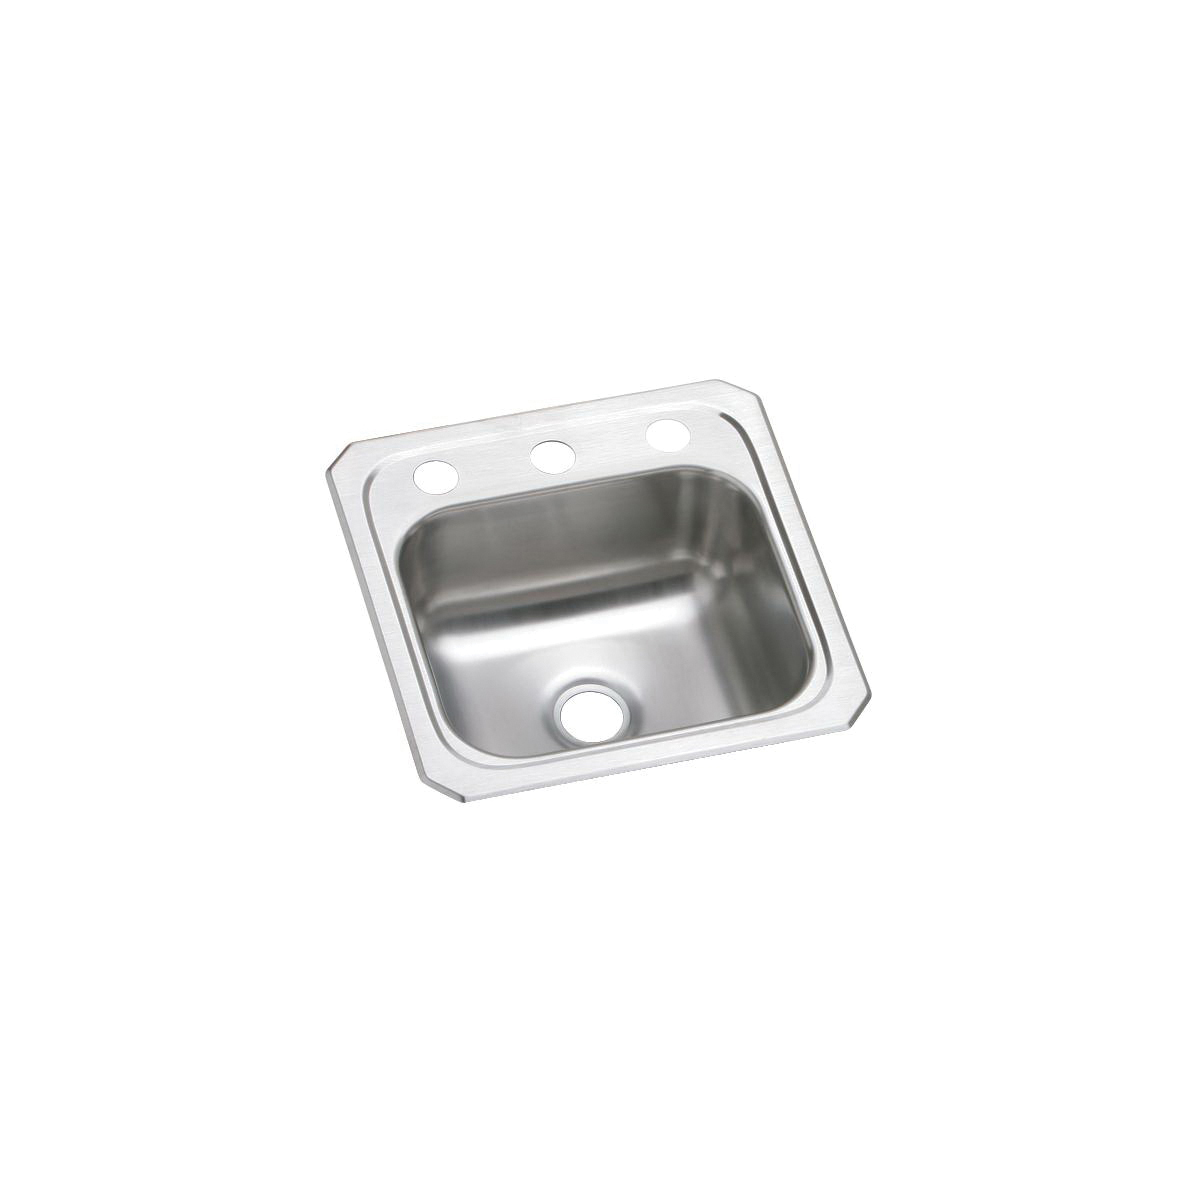 Elkay® BCR152 Celebrity Bar Sink, Square, 2 Faucet Holes, 15 in W x 6-1/8 in D x 15 in H, Top Mount, Stainless Steel, Brushed Satin, Domestic